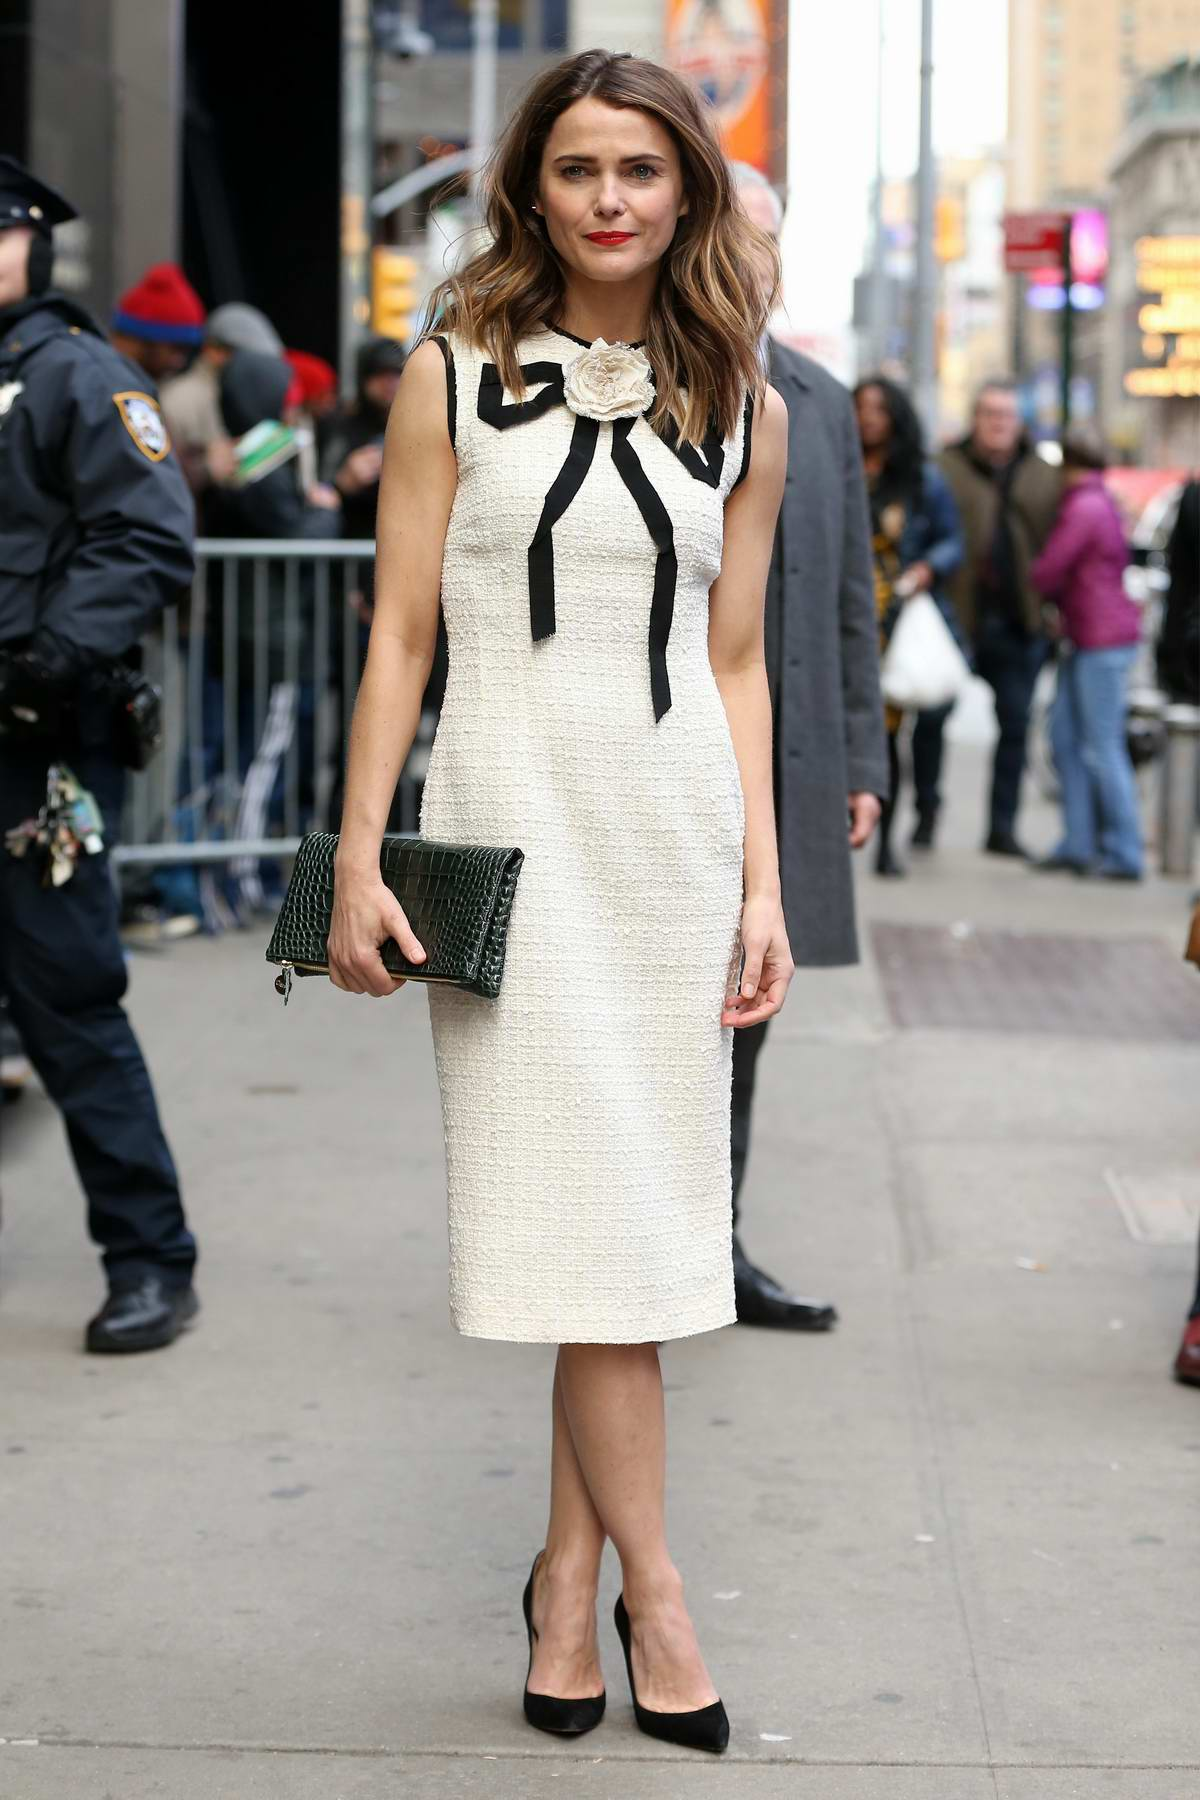 Keri Russell looks stunning in white as she arrives at the Good Morning America in New York City